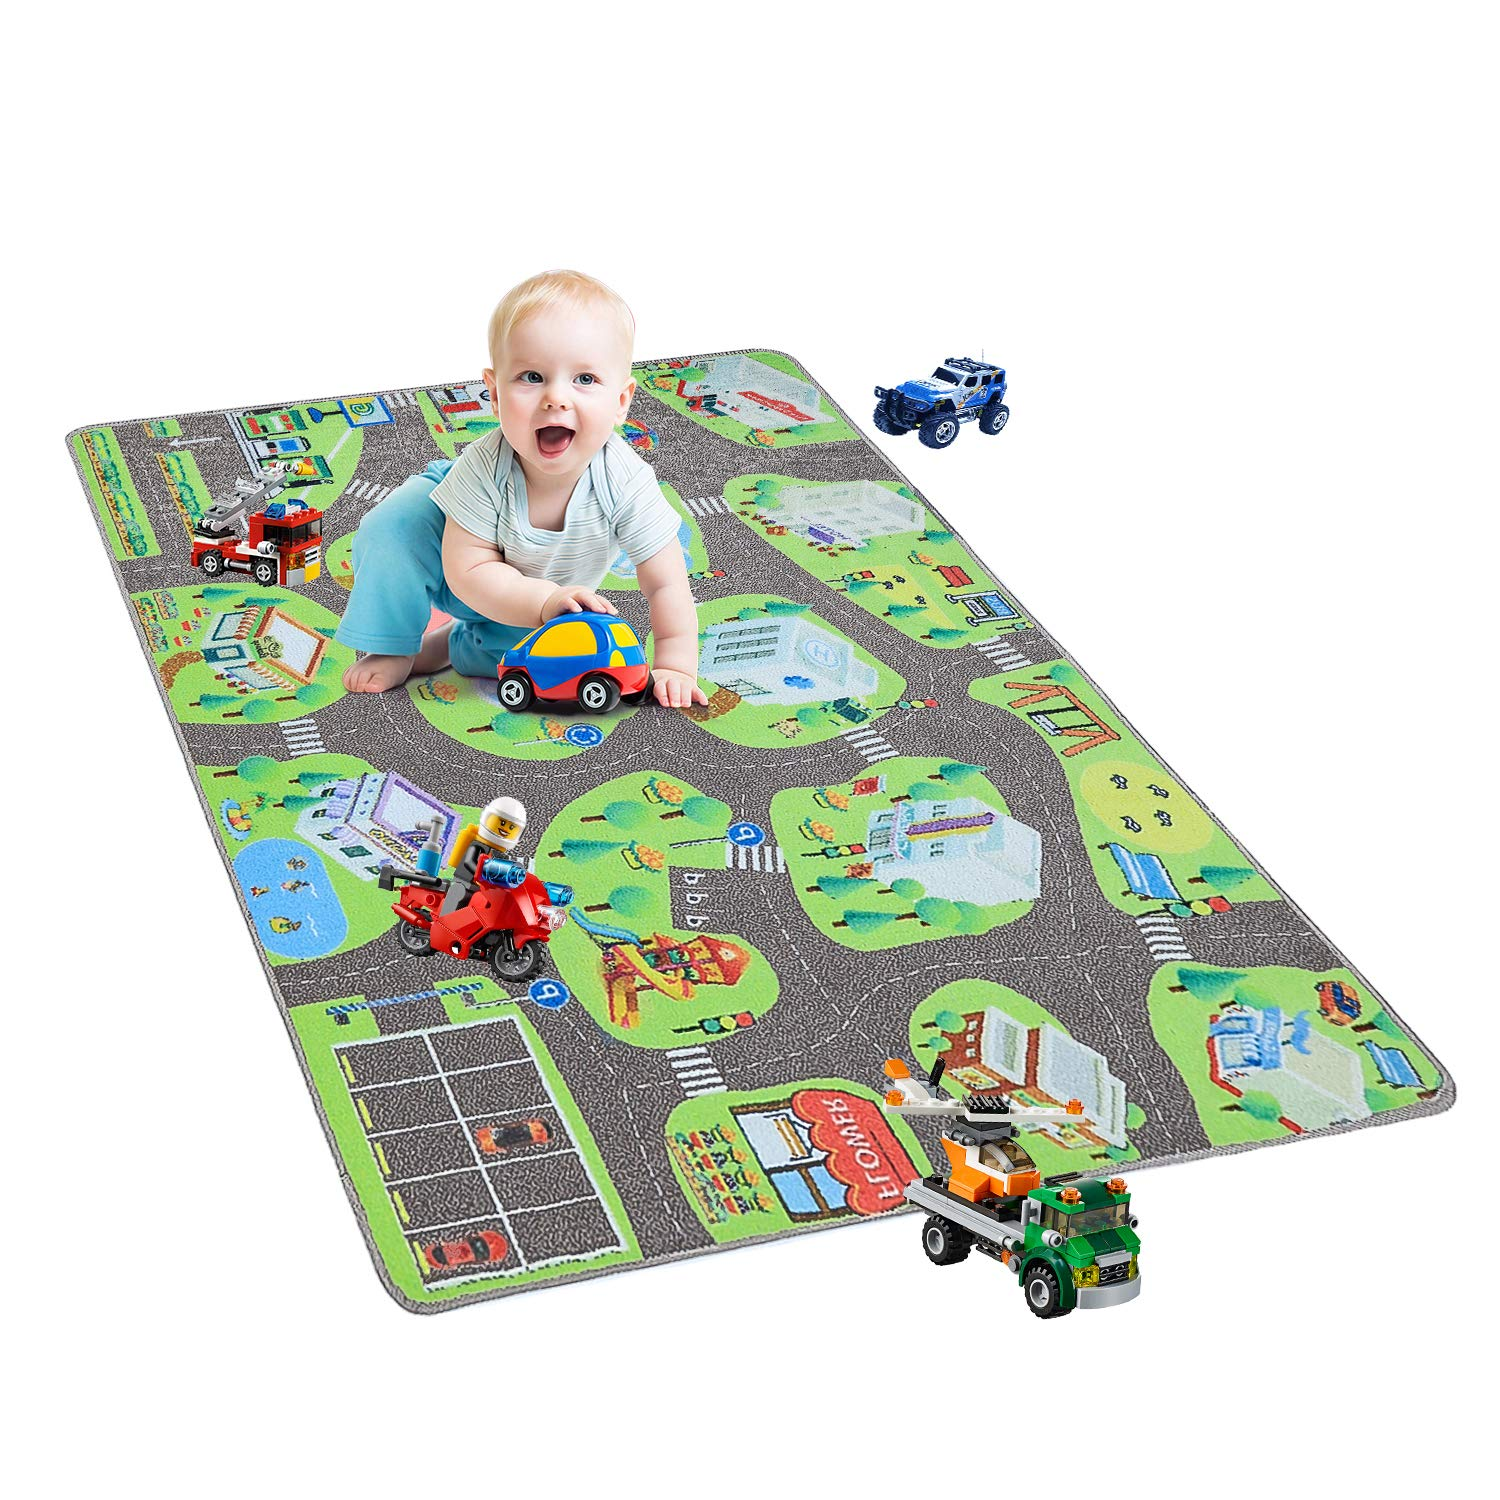 YJ.GWL Kids Carpet Play Mat Rug City Life Great for Playing with Cars and Toys to Learn and Have Fun Safely Children Educational Road Traffic Area Rugs for Bedroom Play Room and Nursery 36'' x 60''